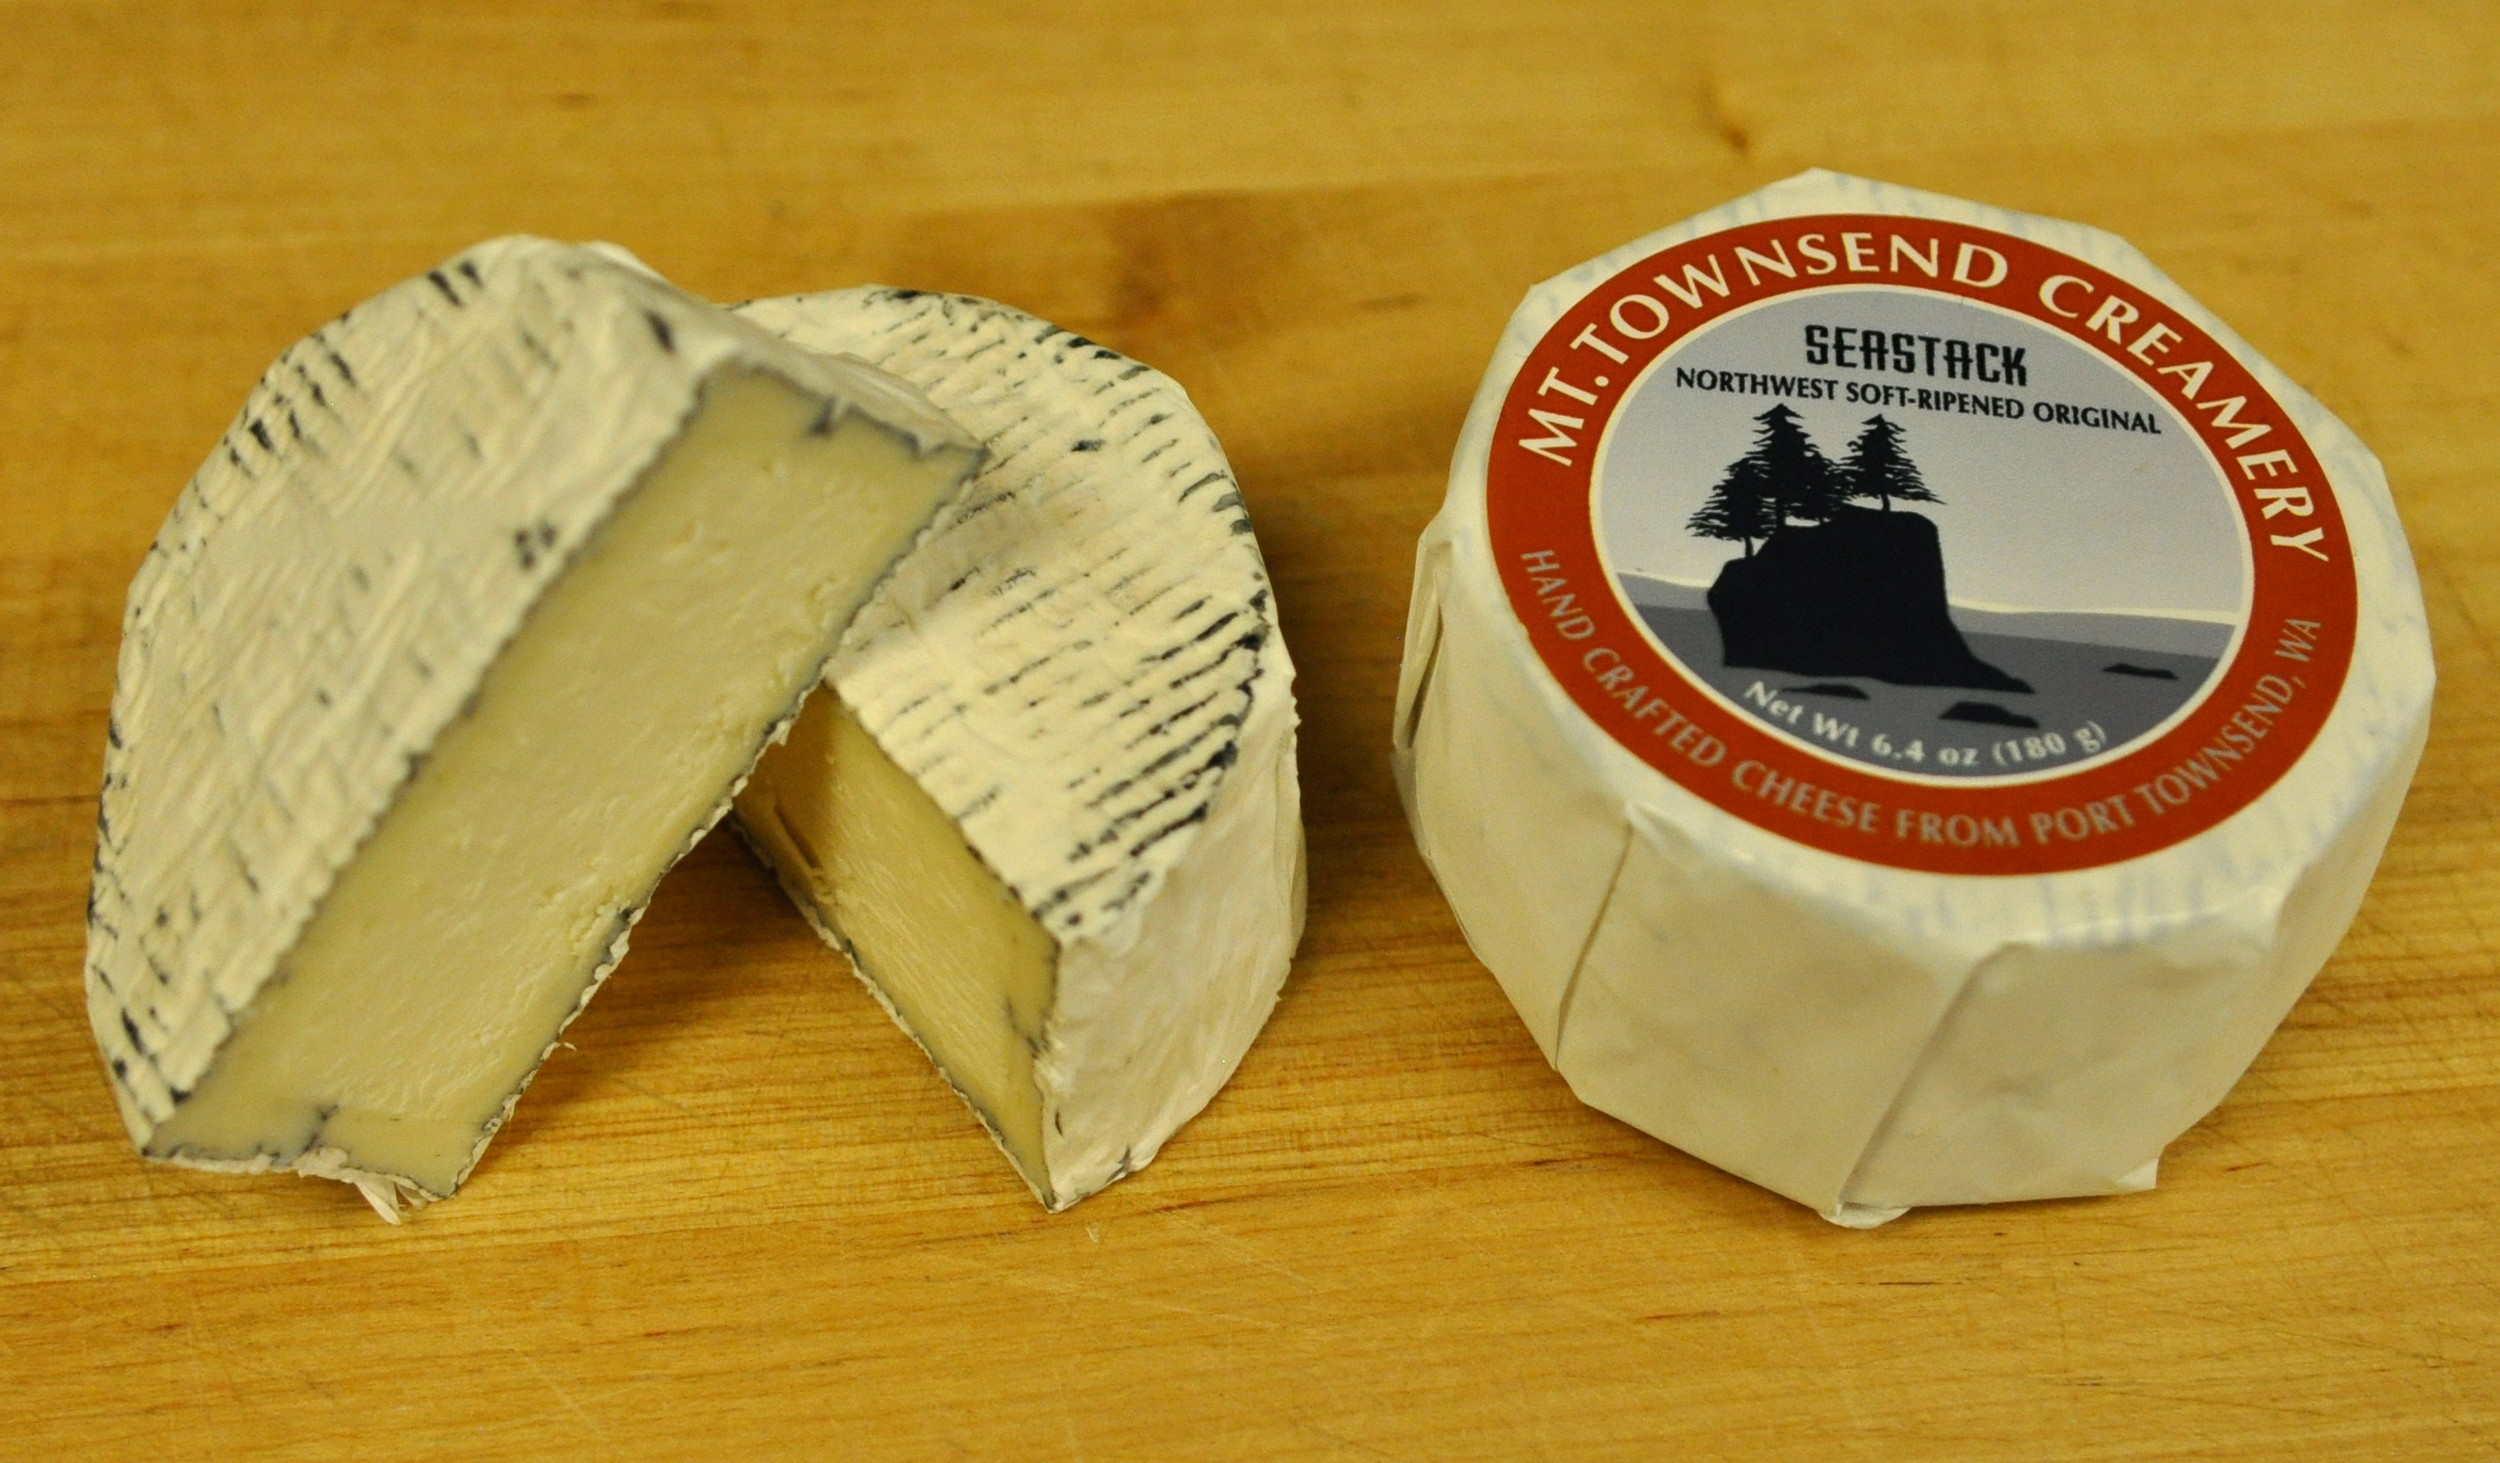 Seastack cheese from Mt Townsend Creamery at Ballard Farmers Market. Copyright Zachary D. Lyons.